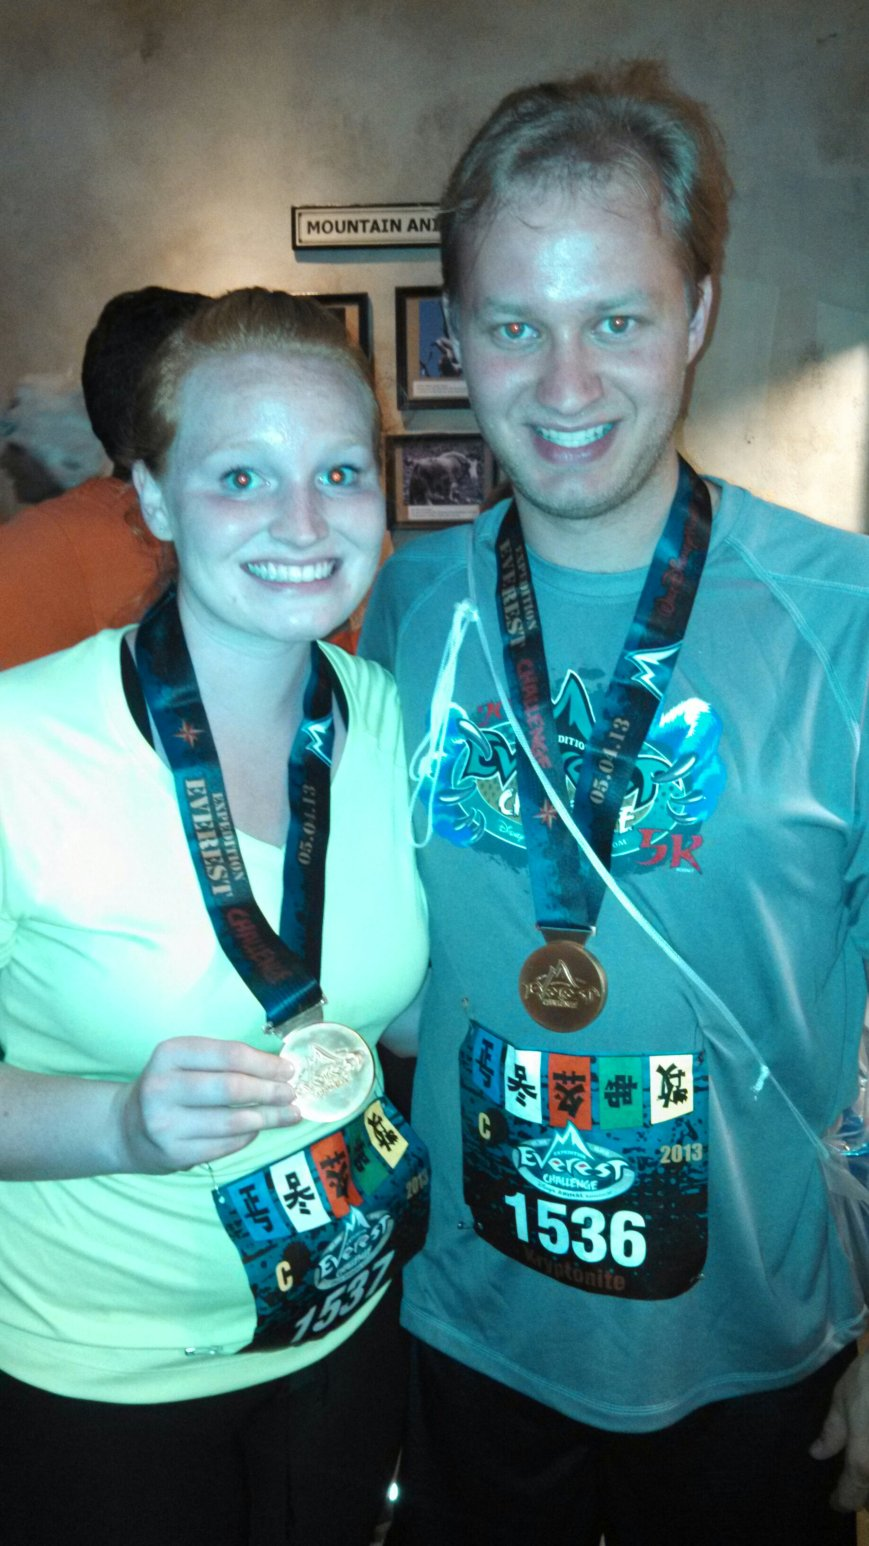 The medals were workable compasses:)